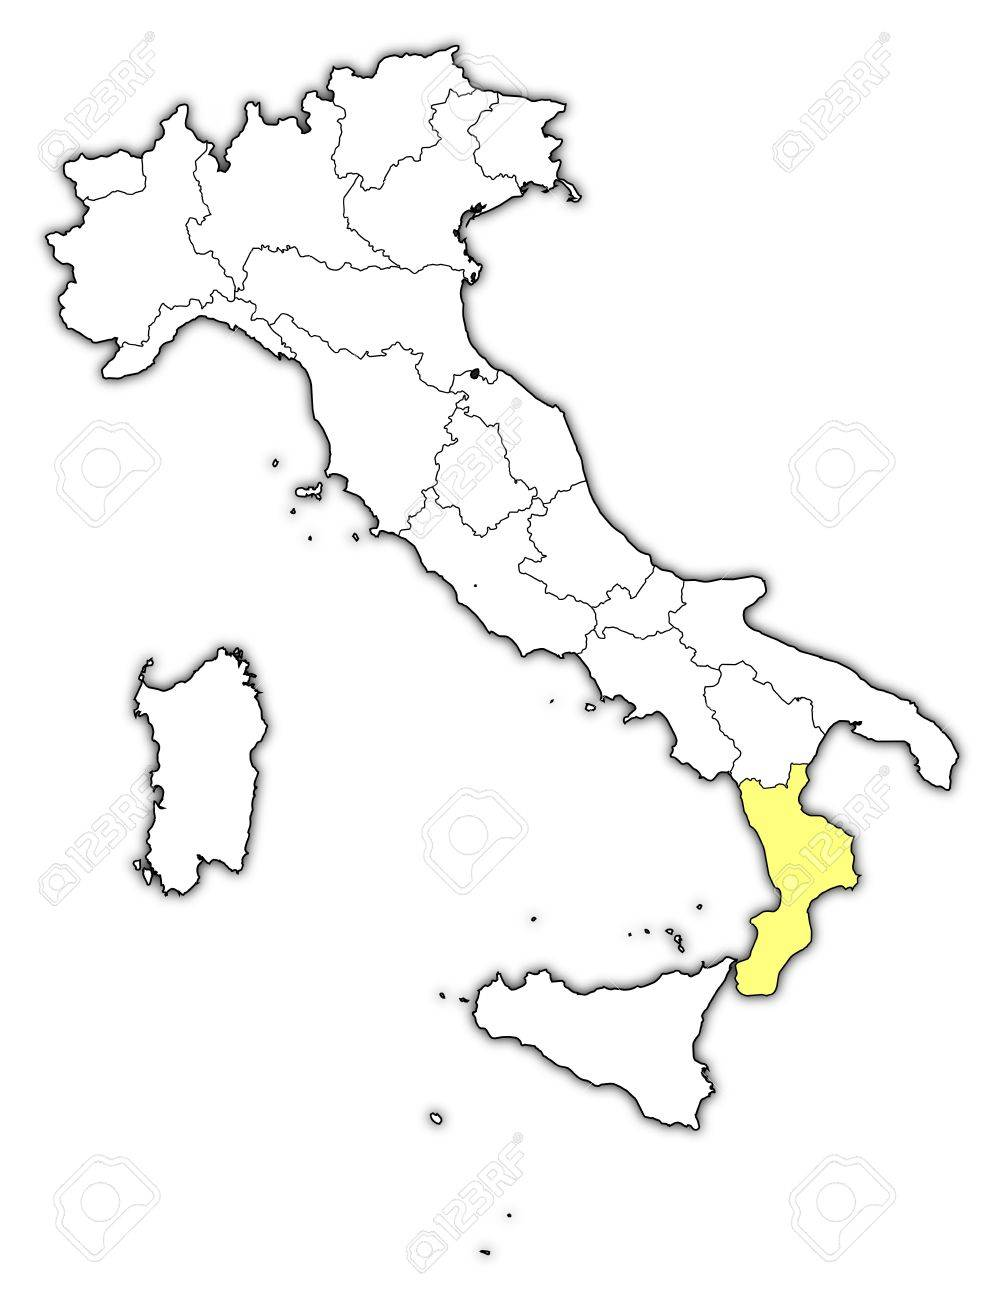 Political Map Of Italy With The Several Regions Where Calabria